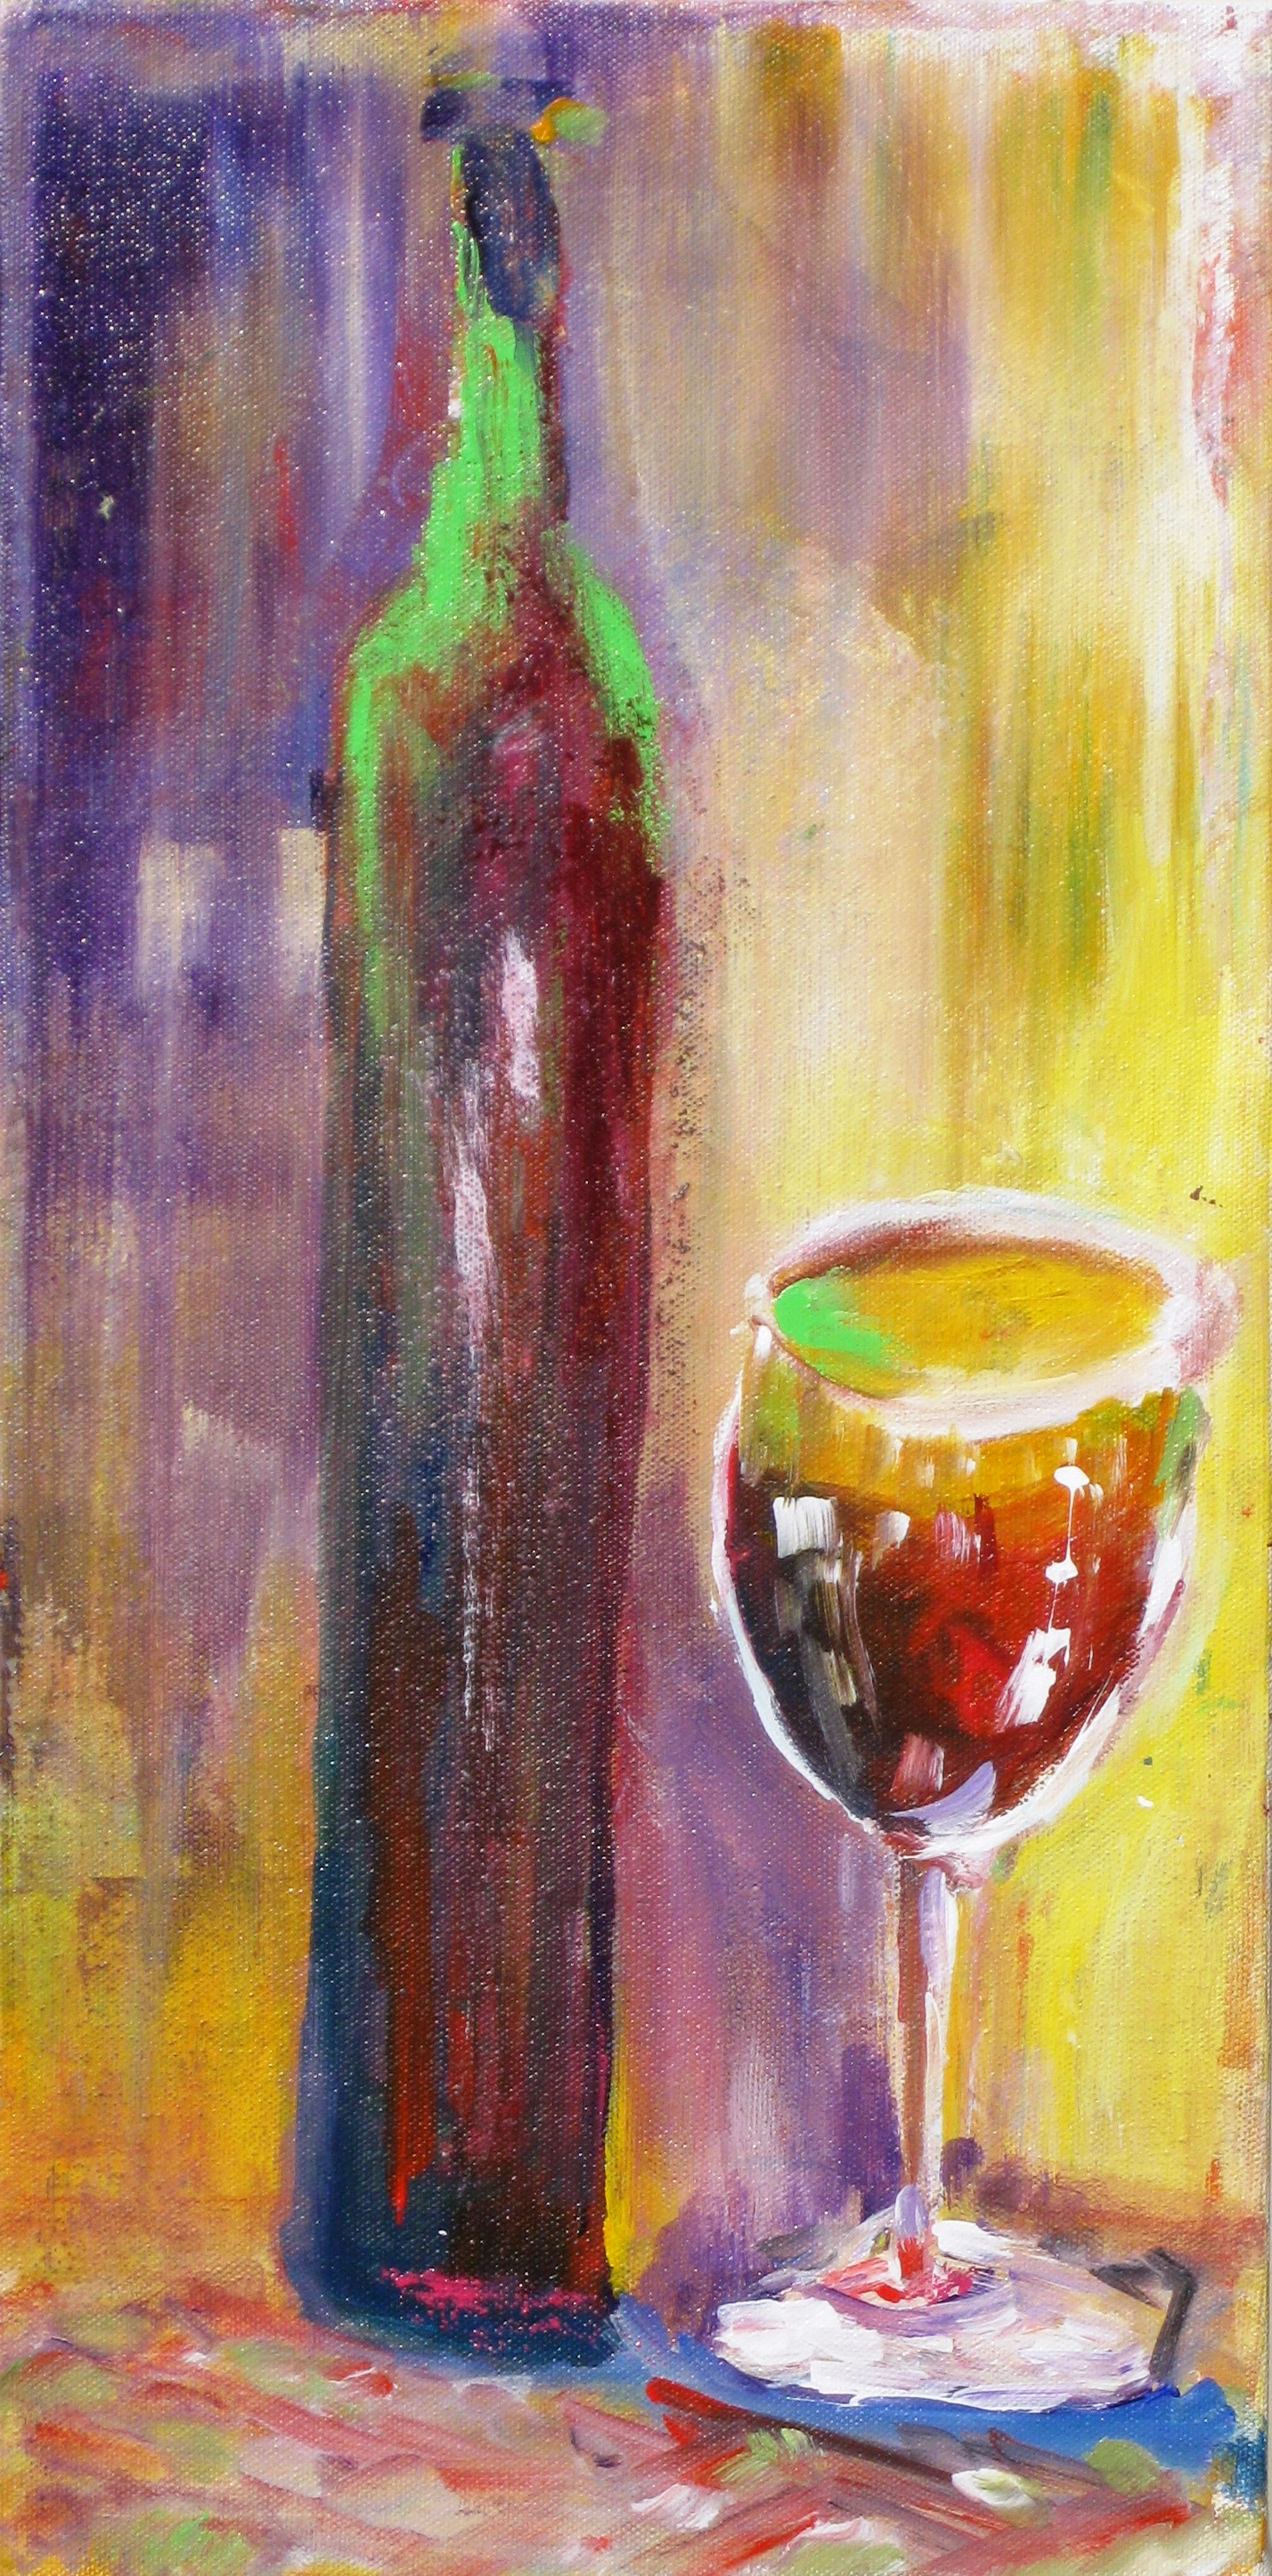 New paintings wine bottle and glass art by dawn corner for How to paint a wine glass with acrylics